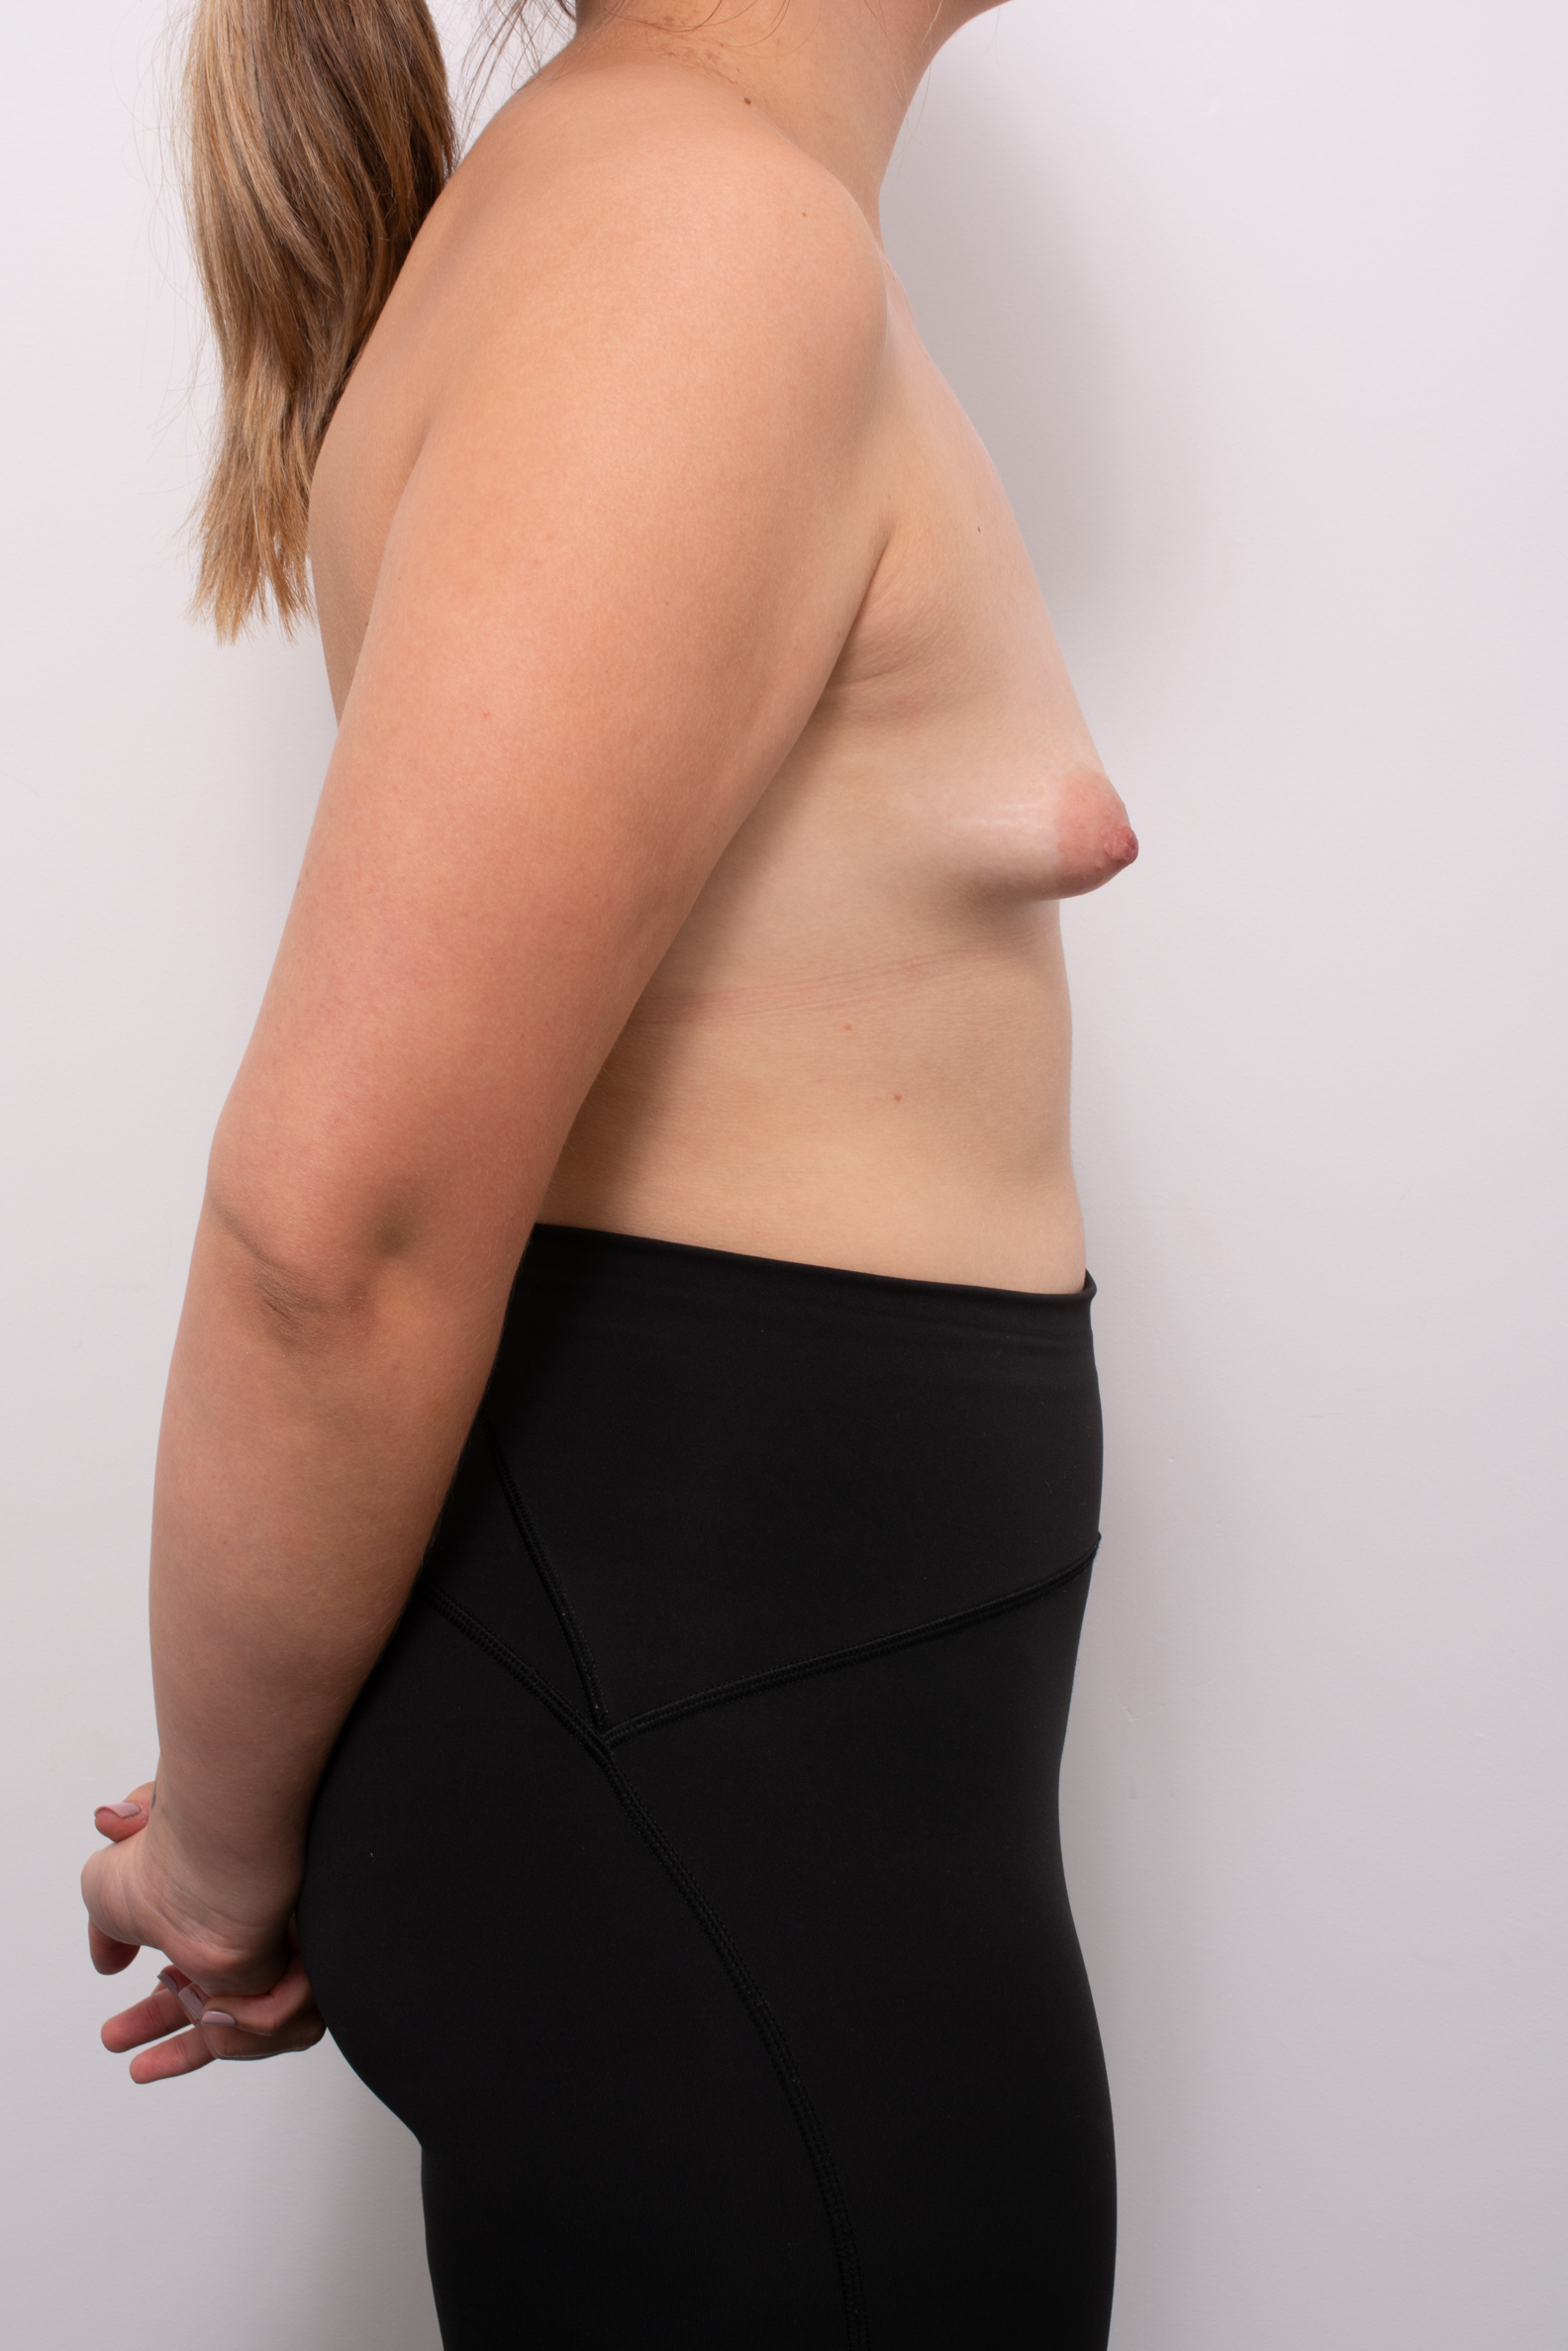 correction of tuberous breasts (5 of 7)